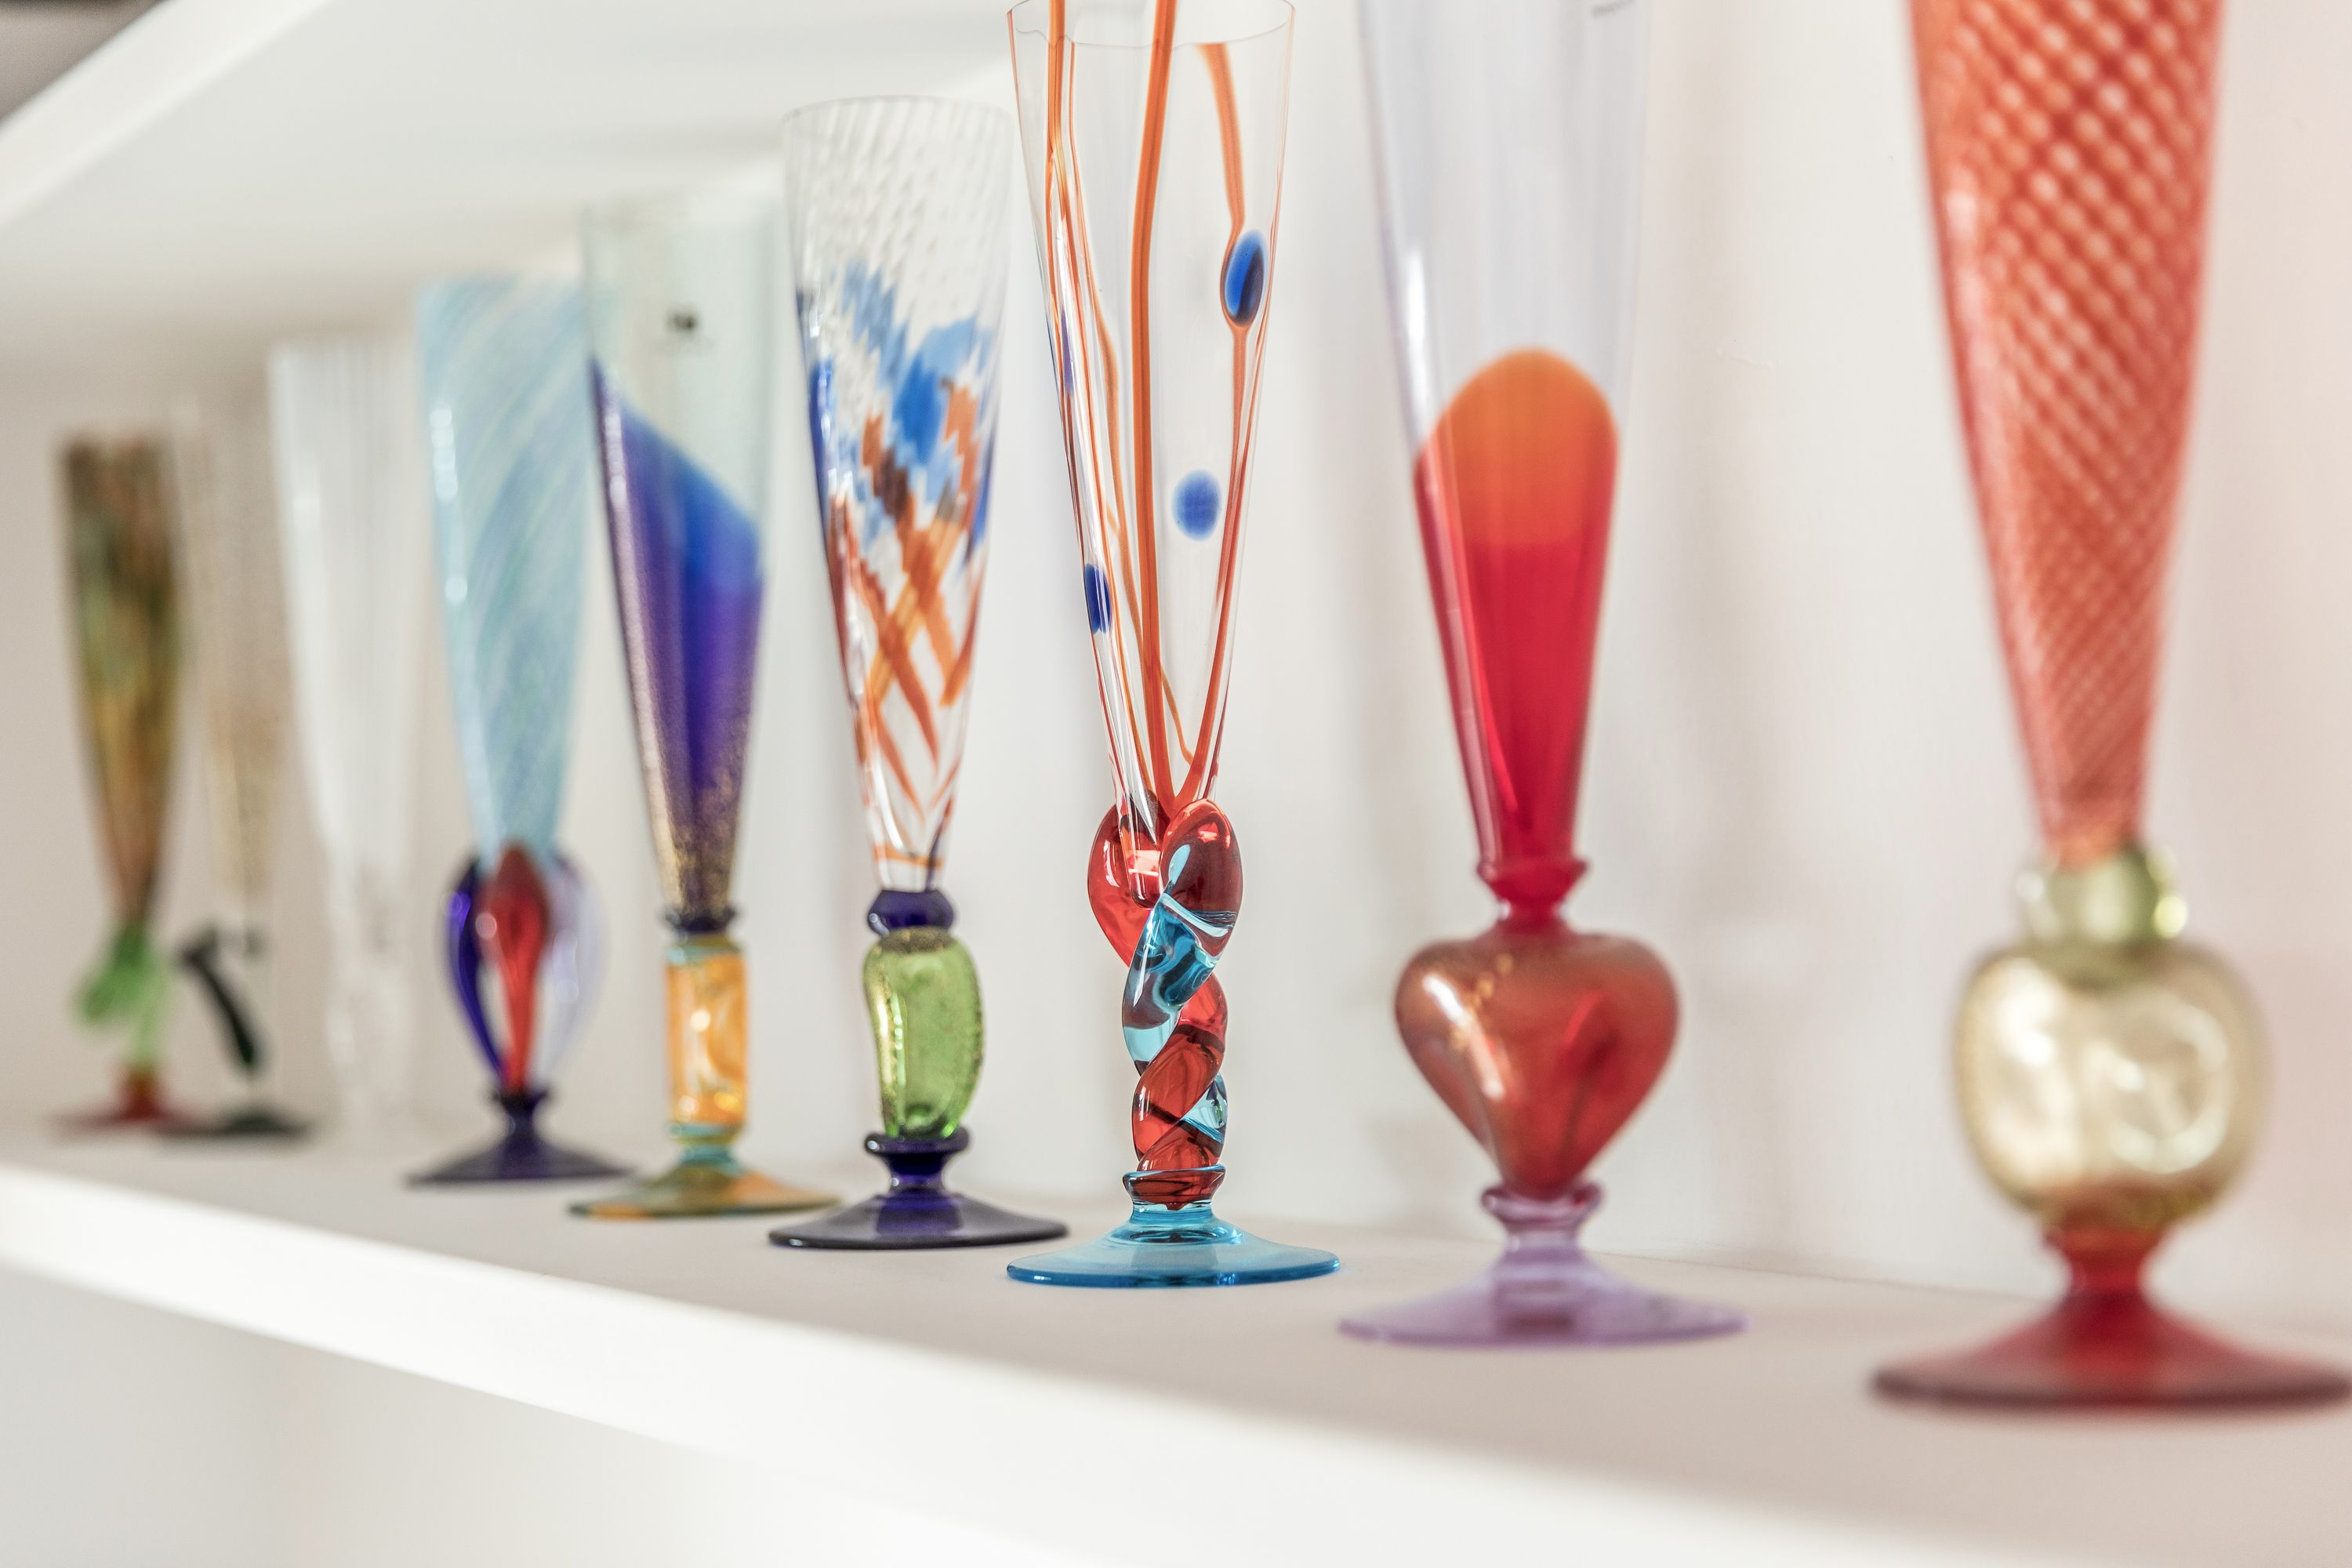 a detail of the stunning Murano Glasses collection